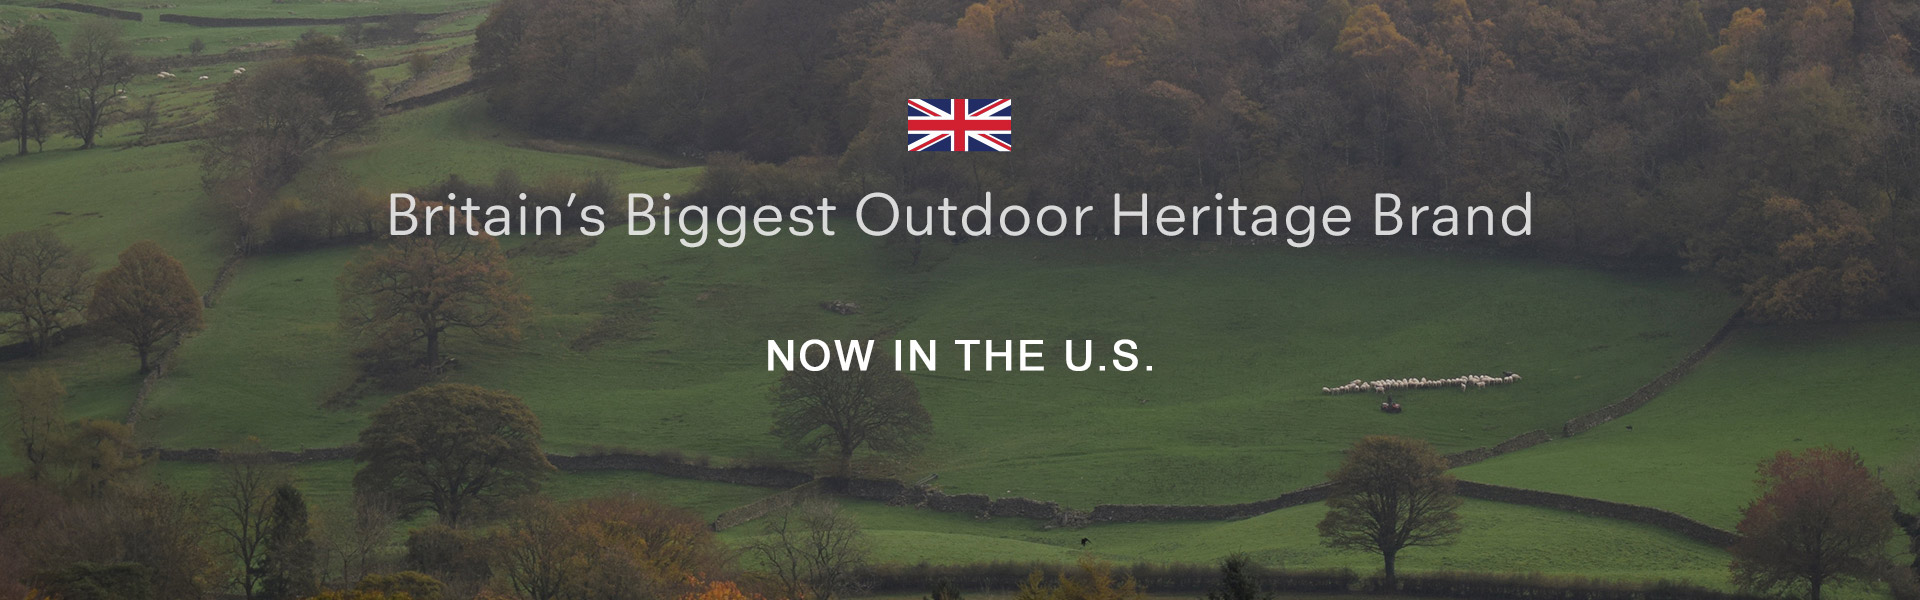 Britains biggest outdoor heritage brand